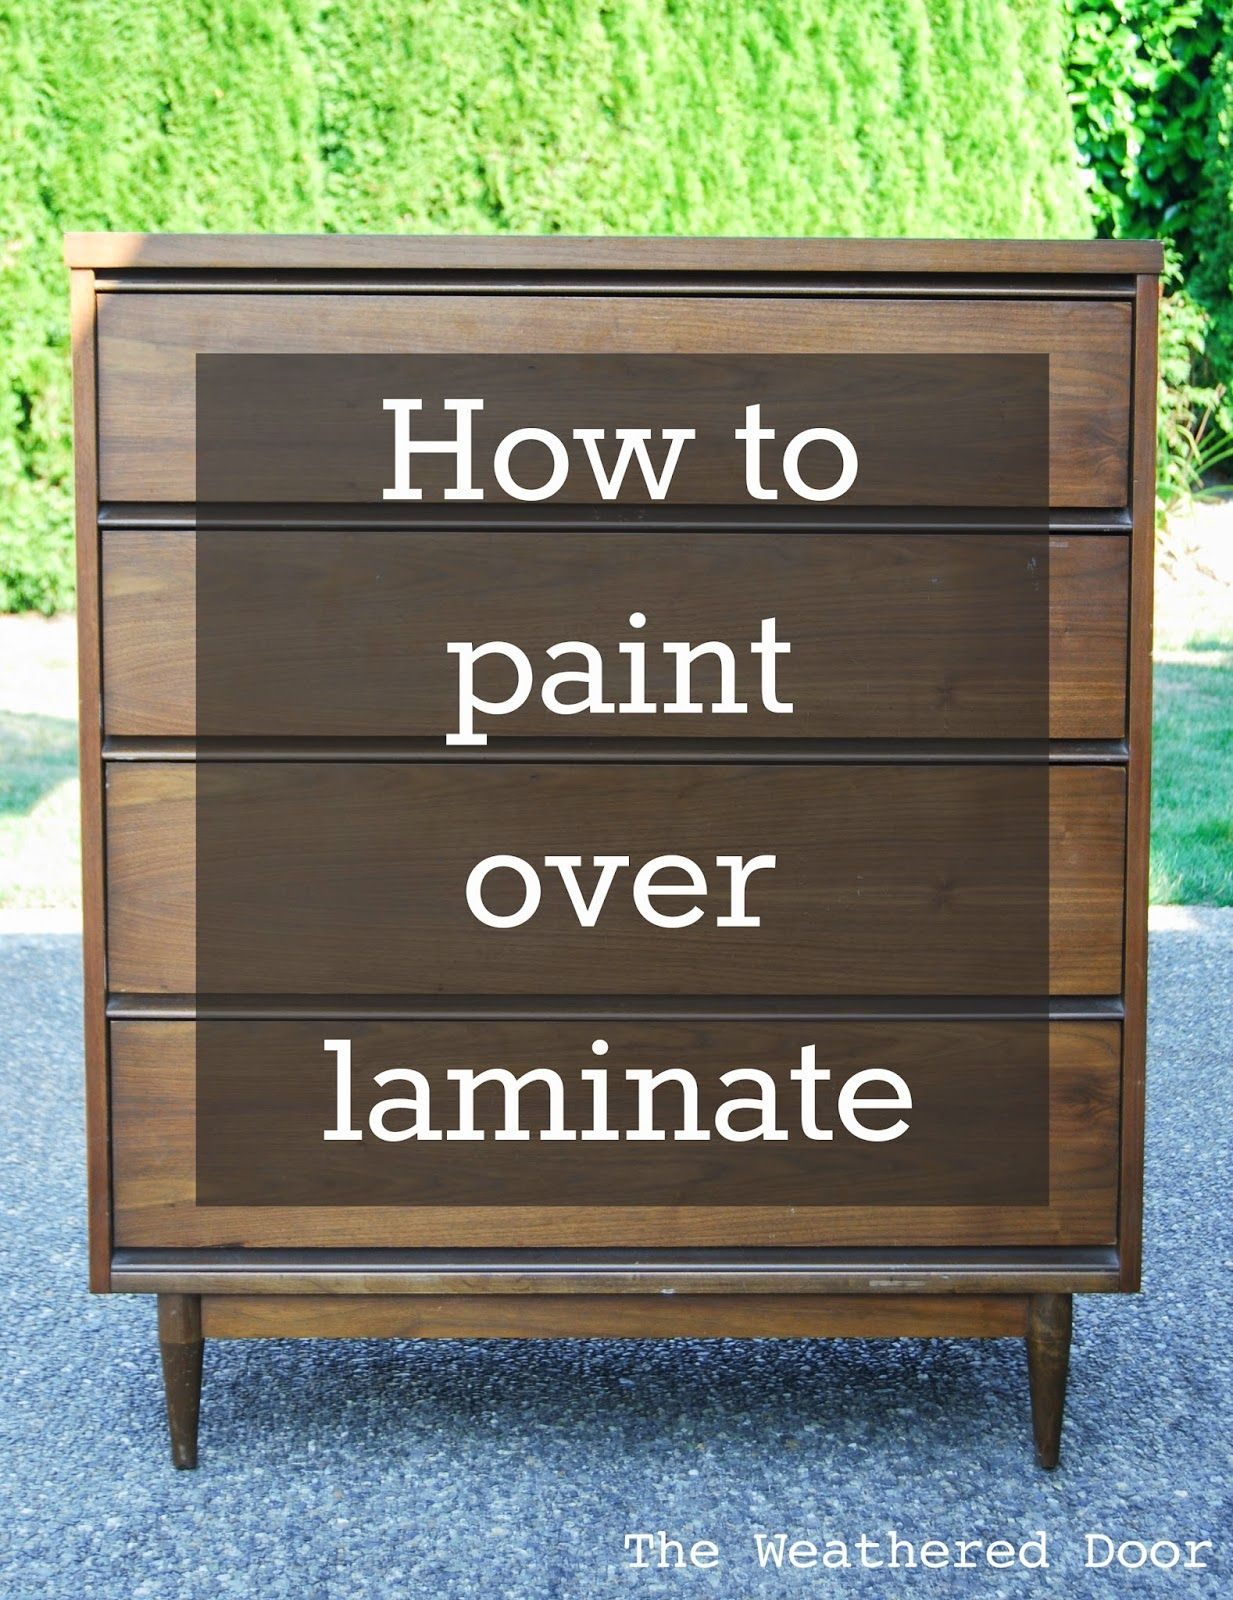 Painting furniture ideas distressed - How To Paint Over Laminate And Why I Love Furniture With Laminate Tops And Why